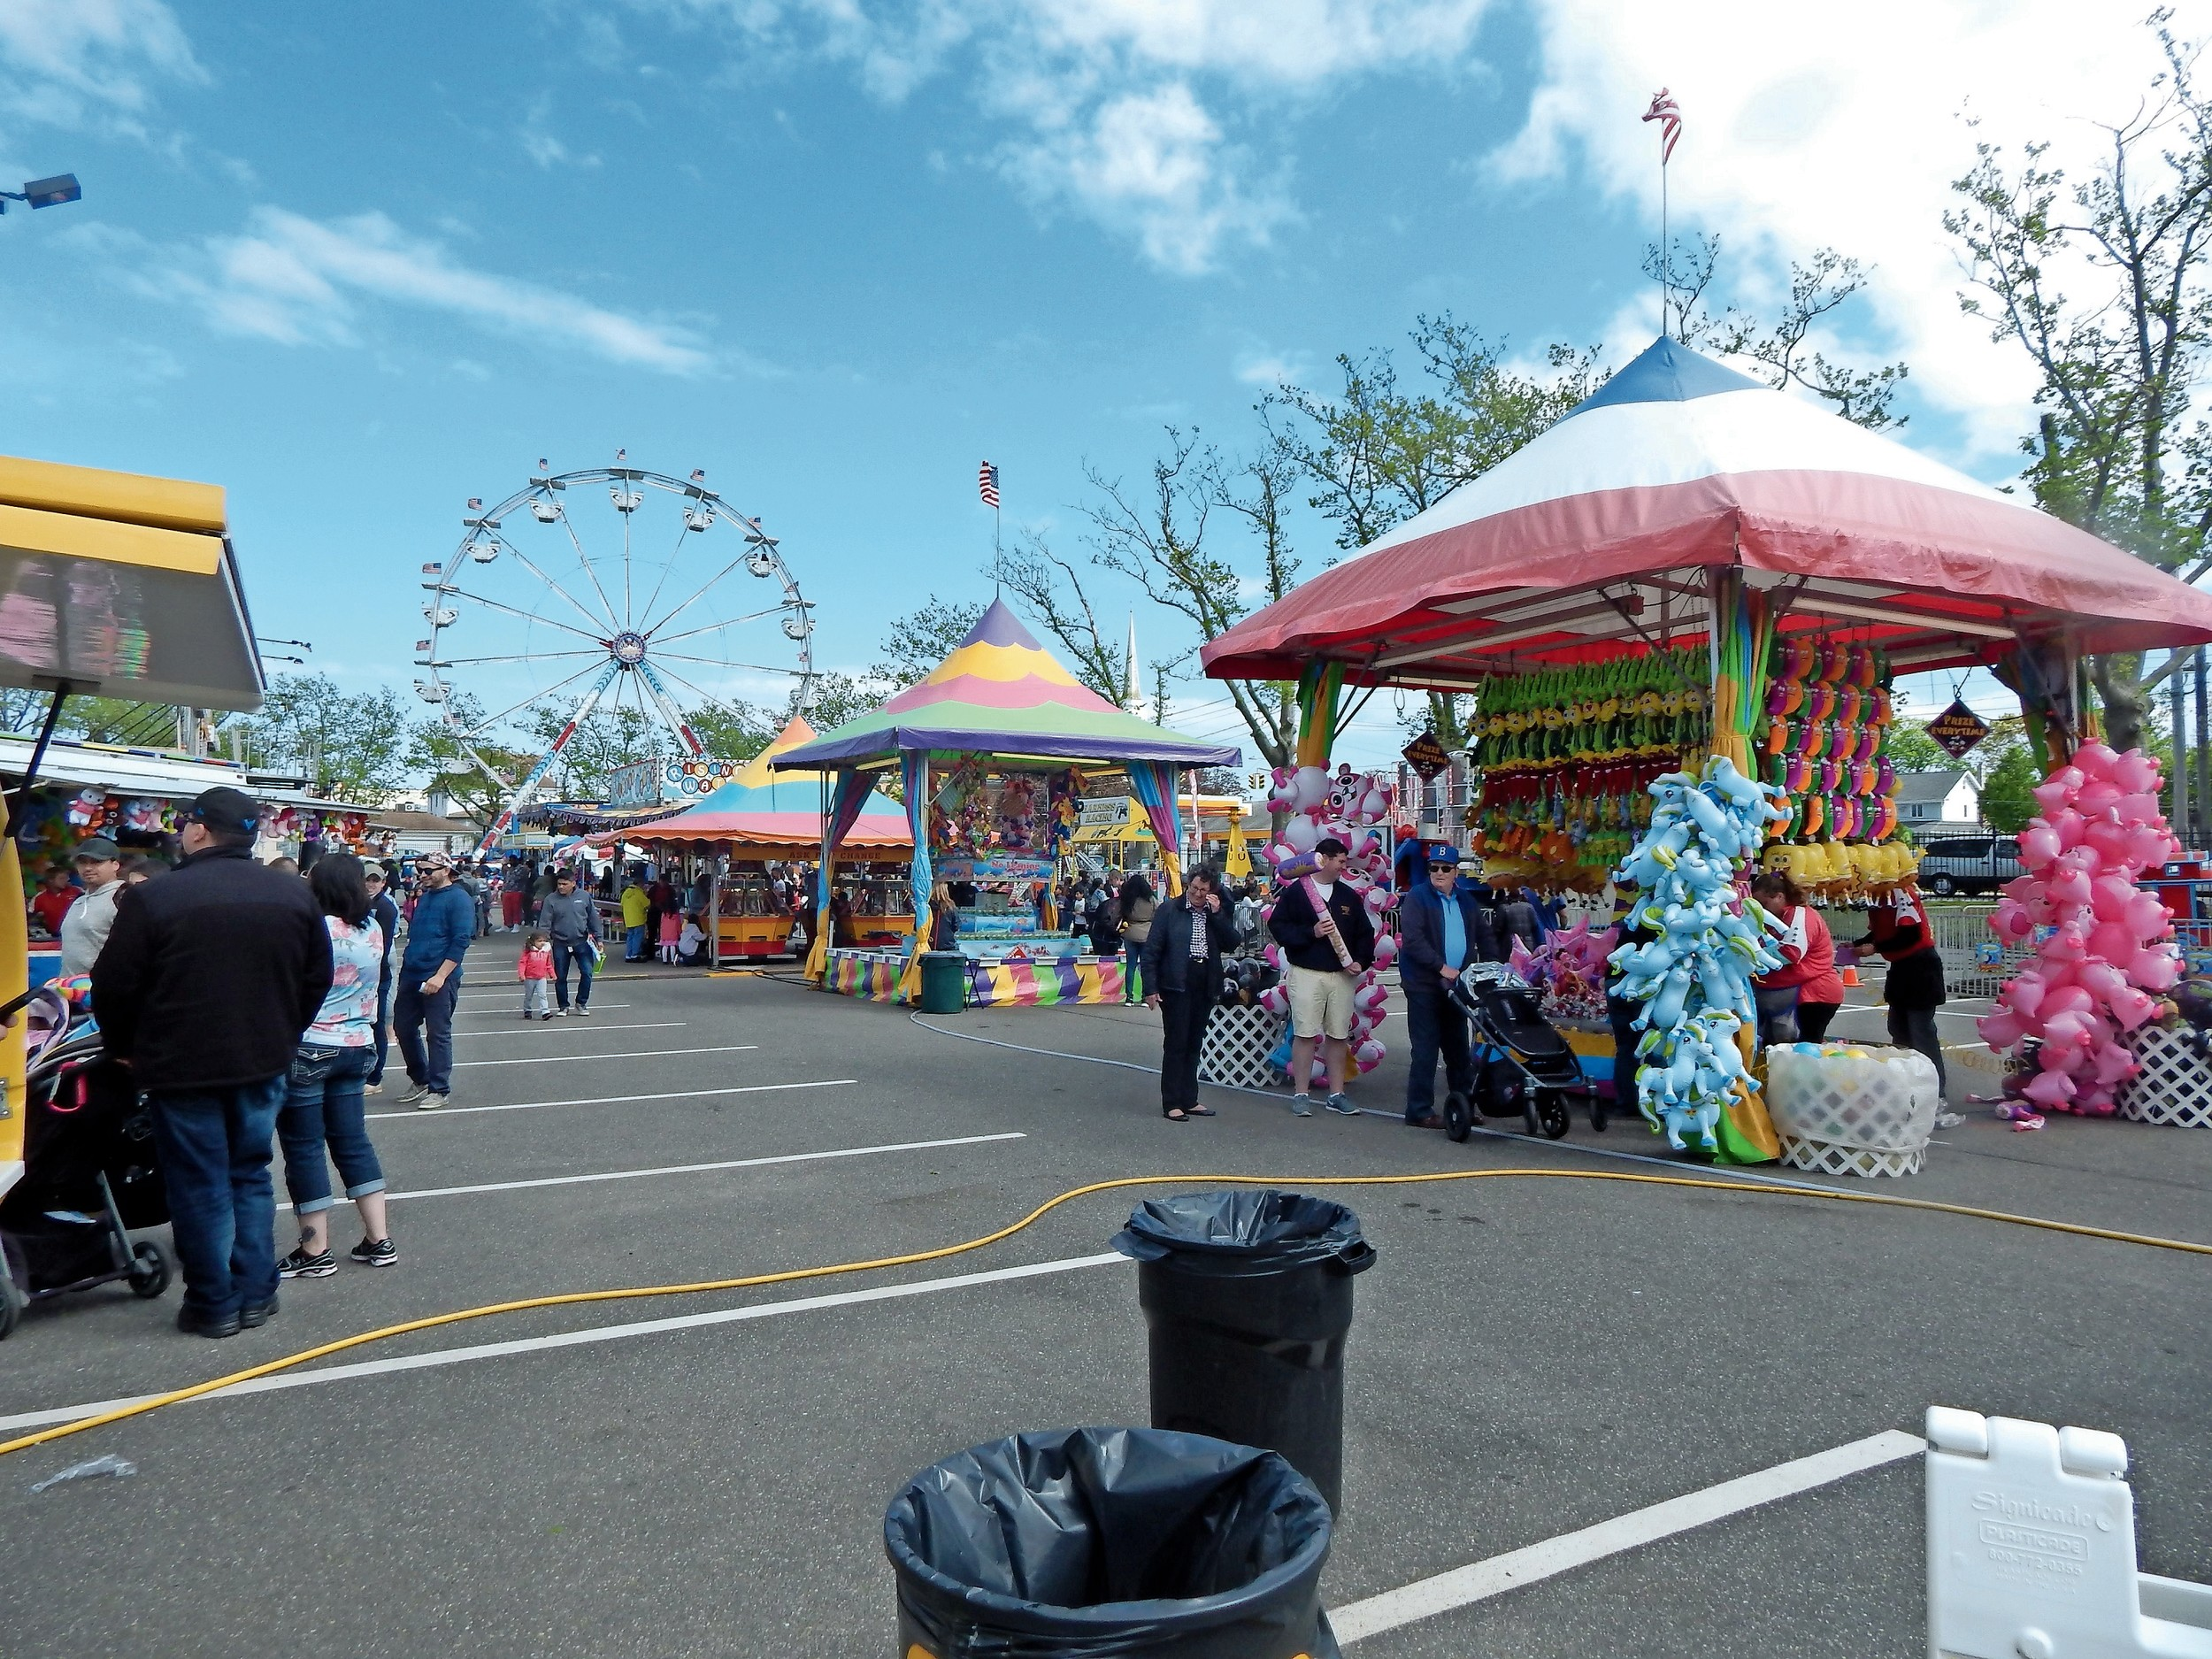 The second-annual carnival was held May 6th at the Arthur J. Hendrickson pool parking lot.